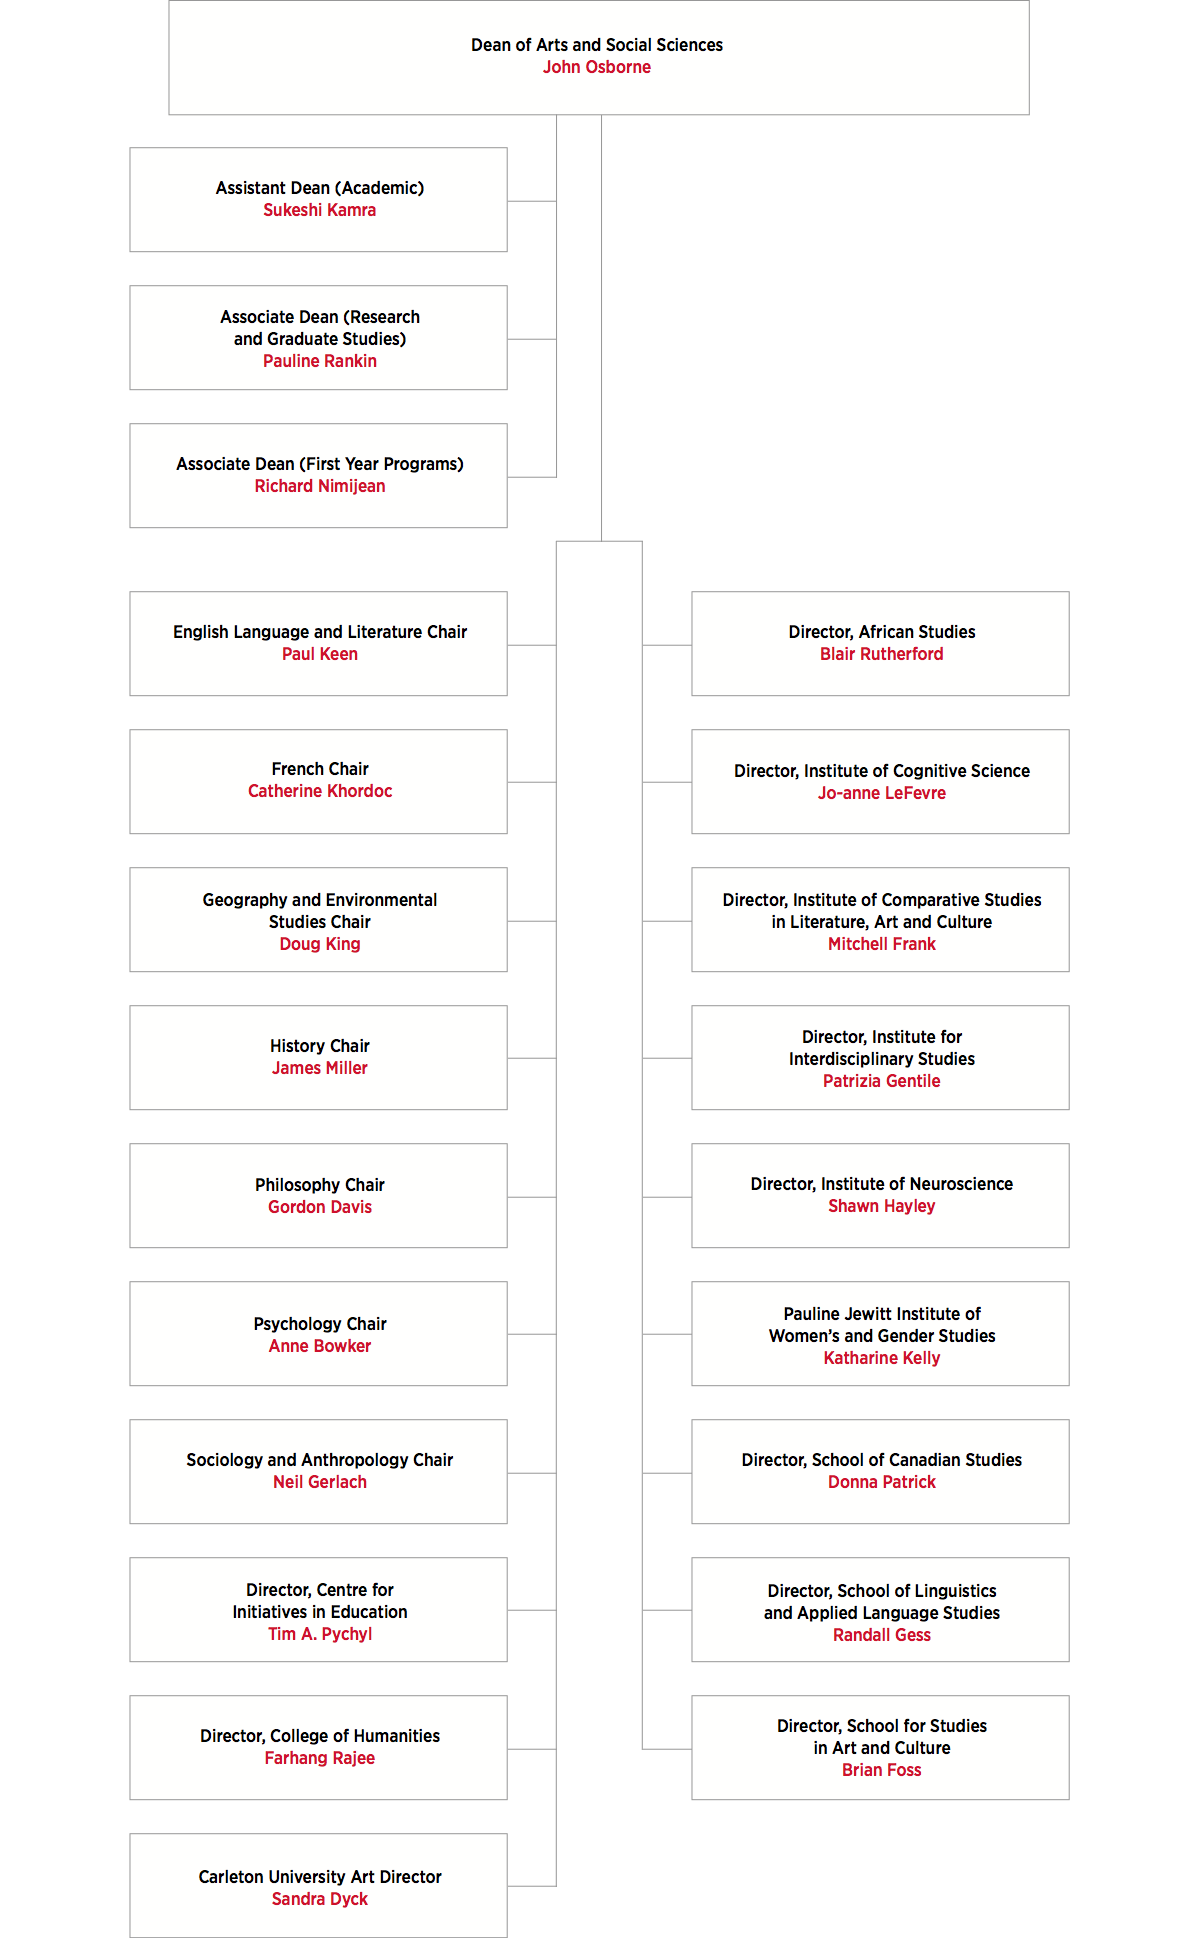 Faculty of Arts and Social Sciences Organizational Chart